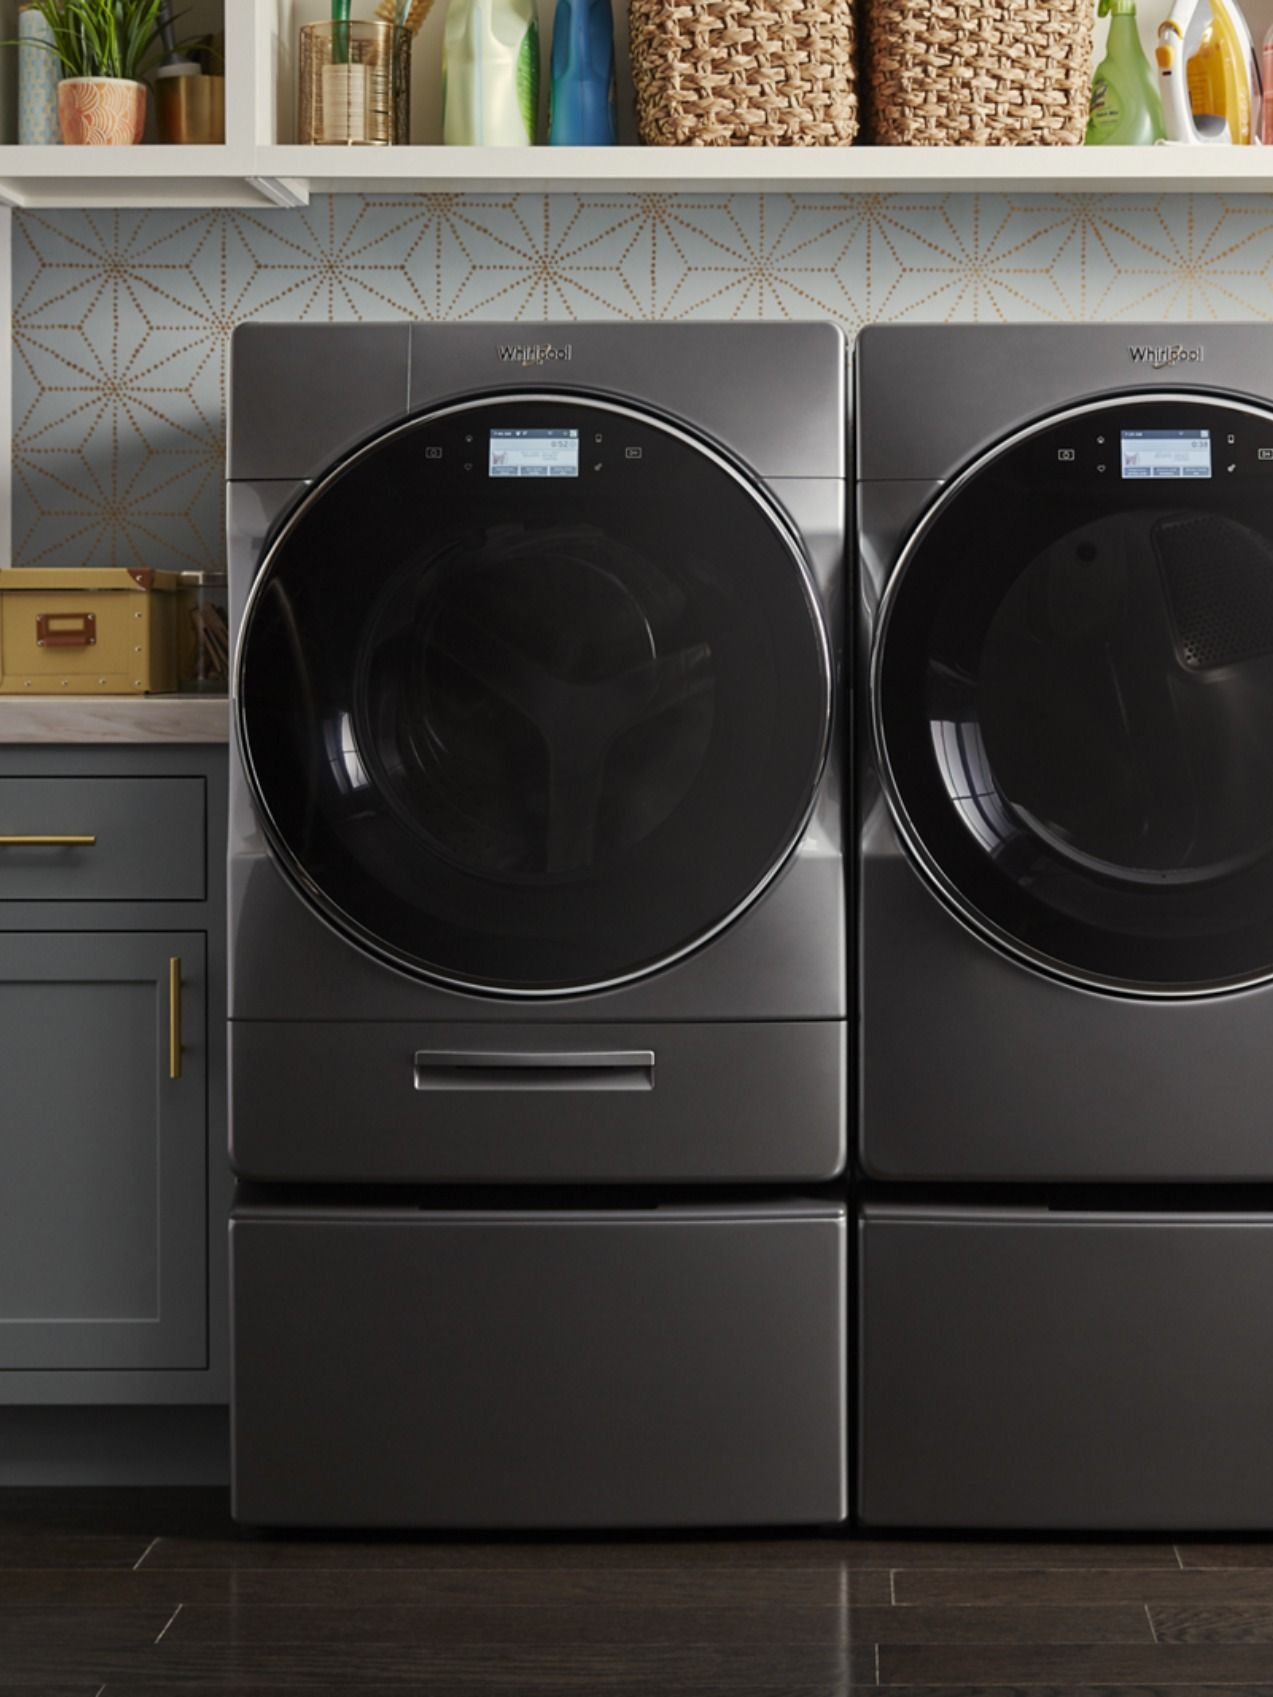 Every Laundry Room Needs These 12 Pretty & Practical